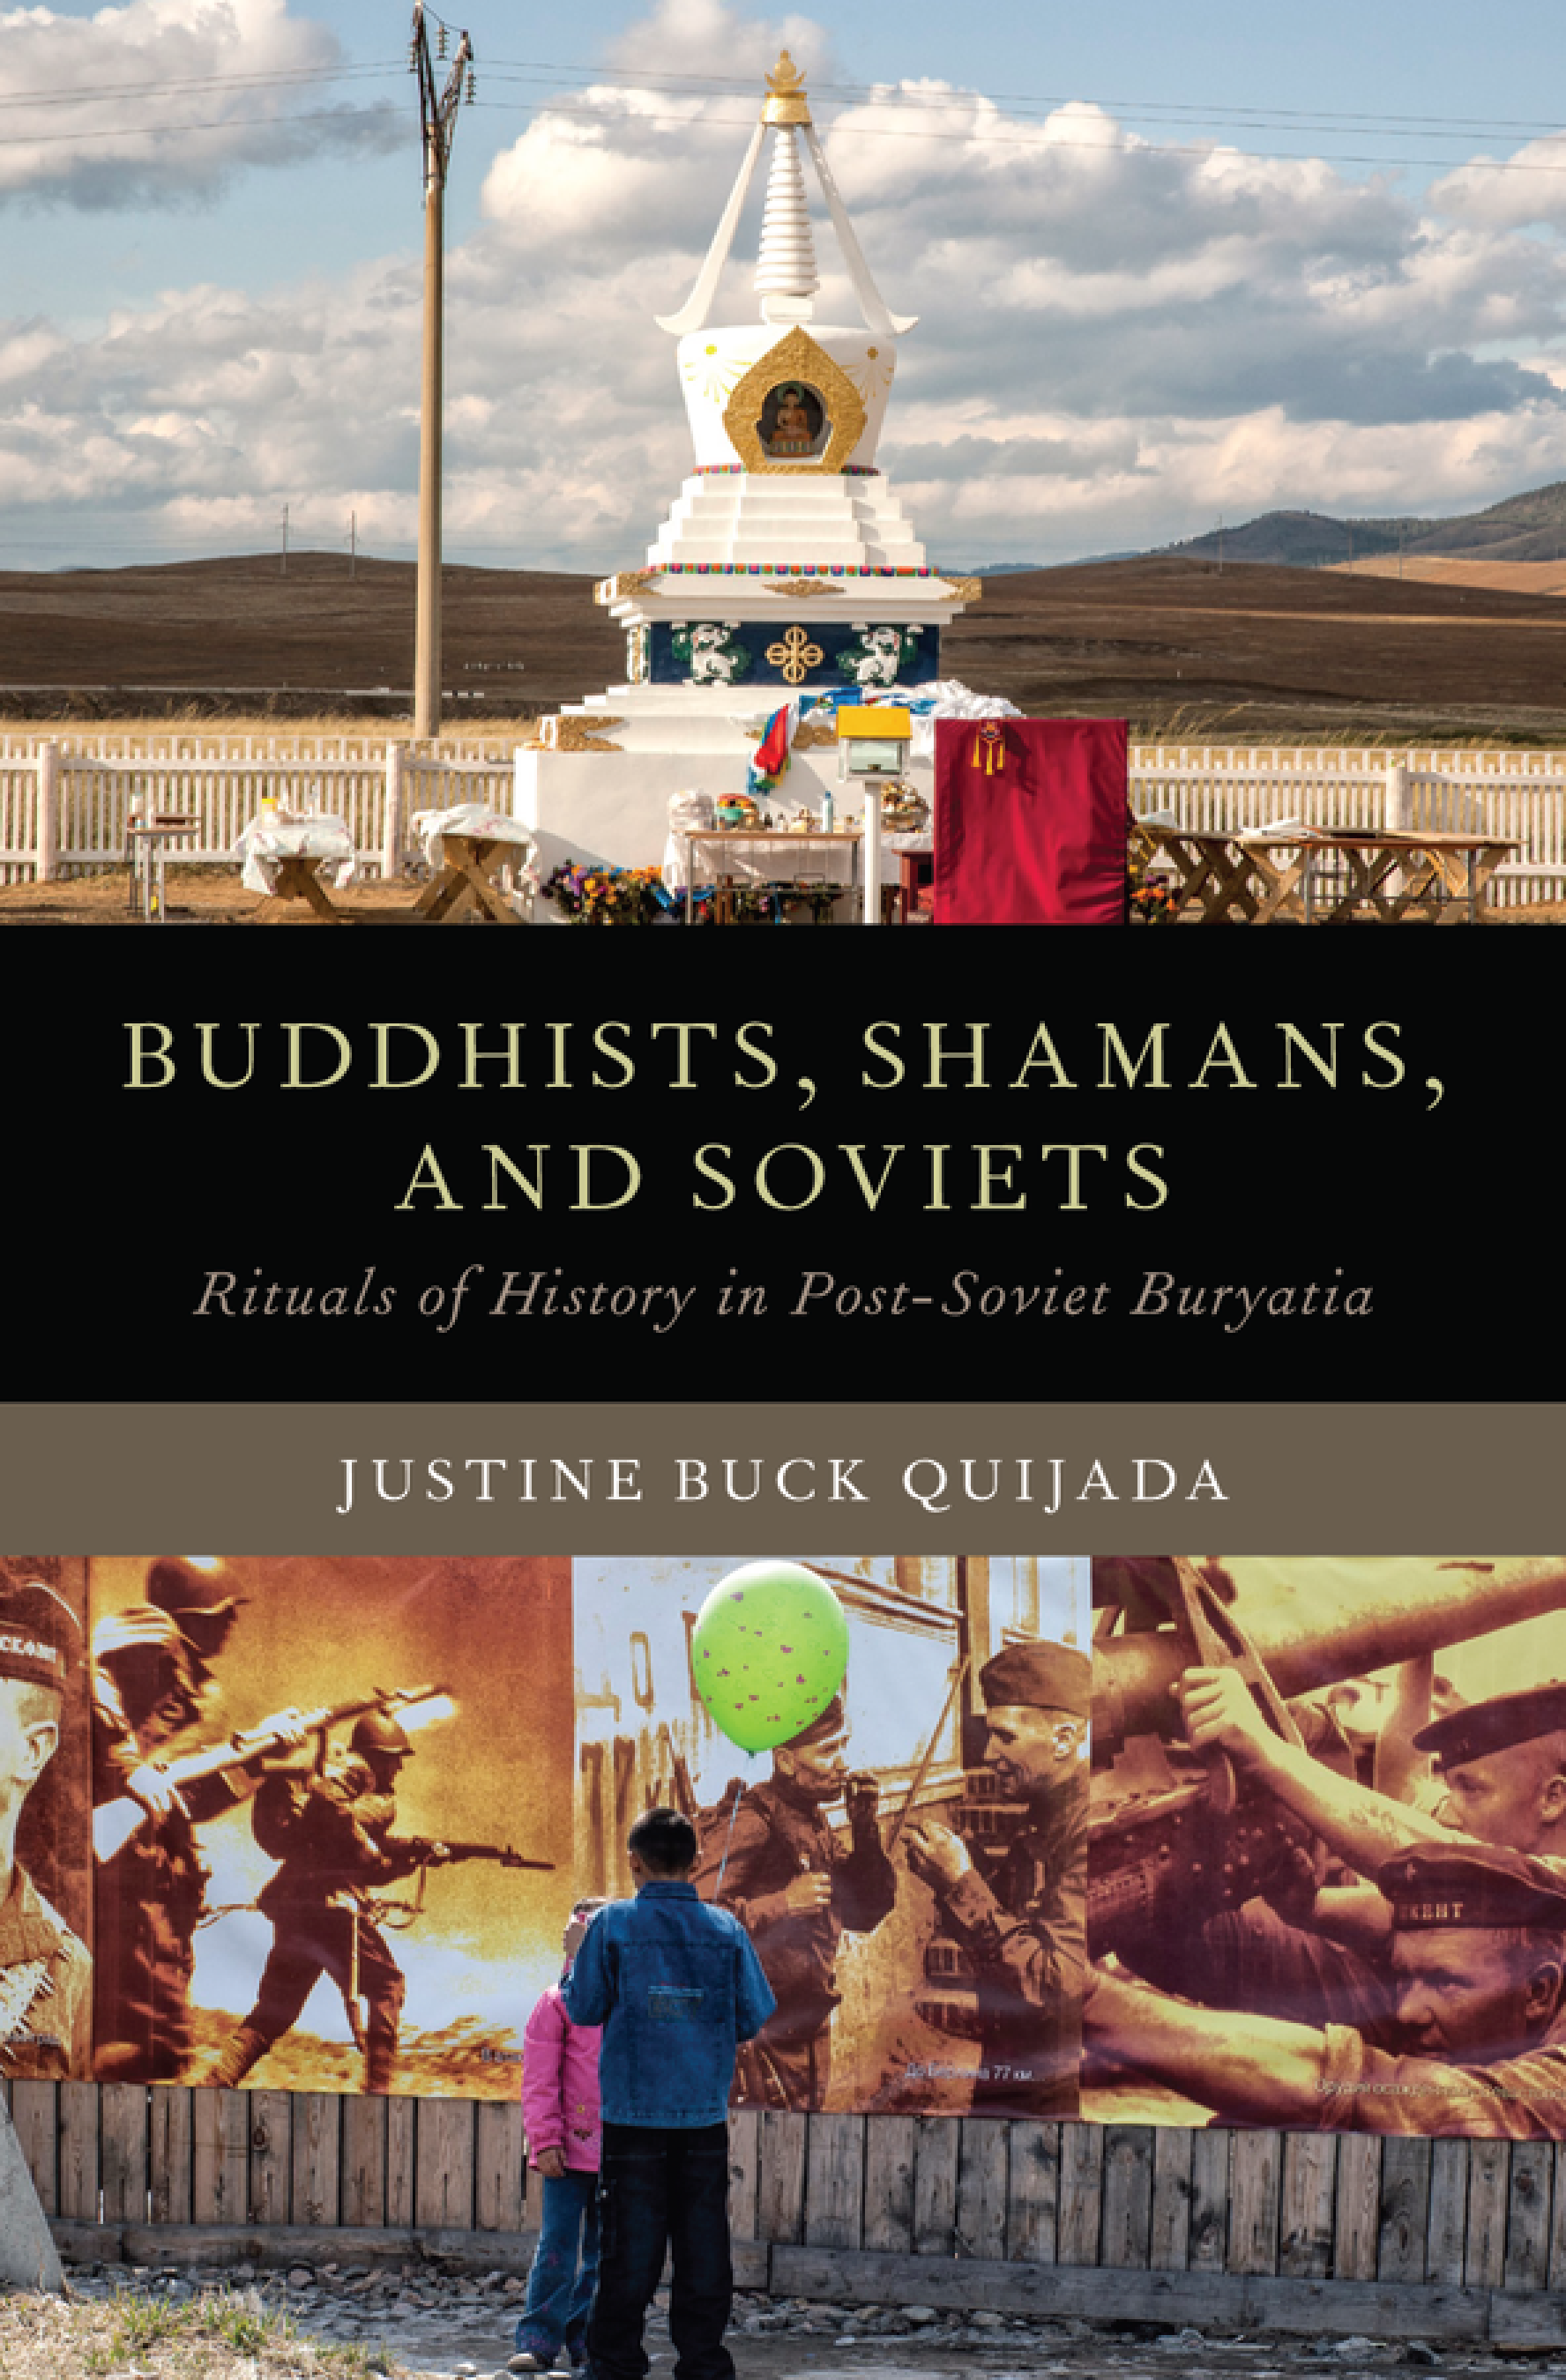 Book cover of Buddhists, Shamans, and Soviets